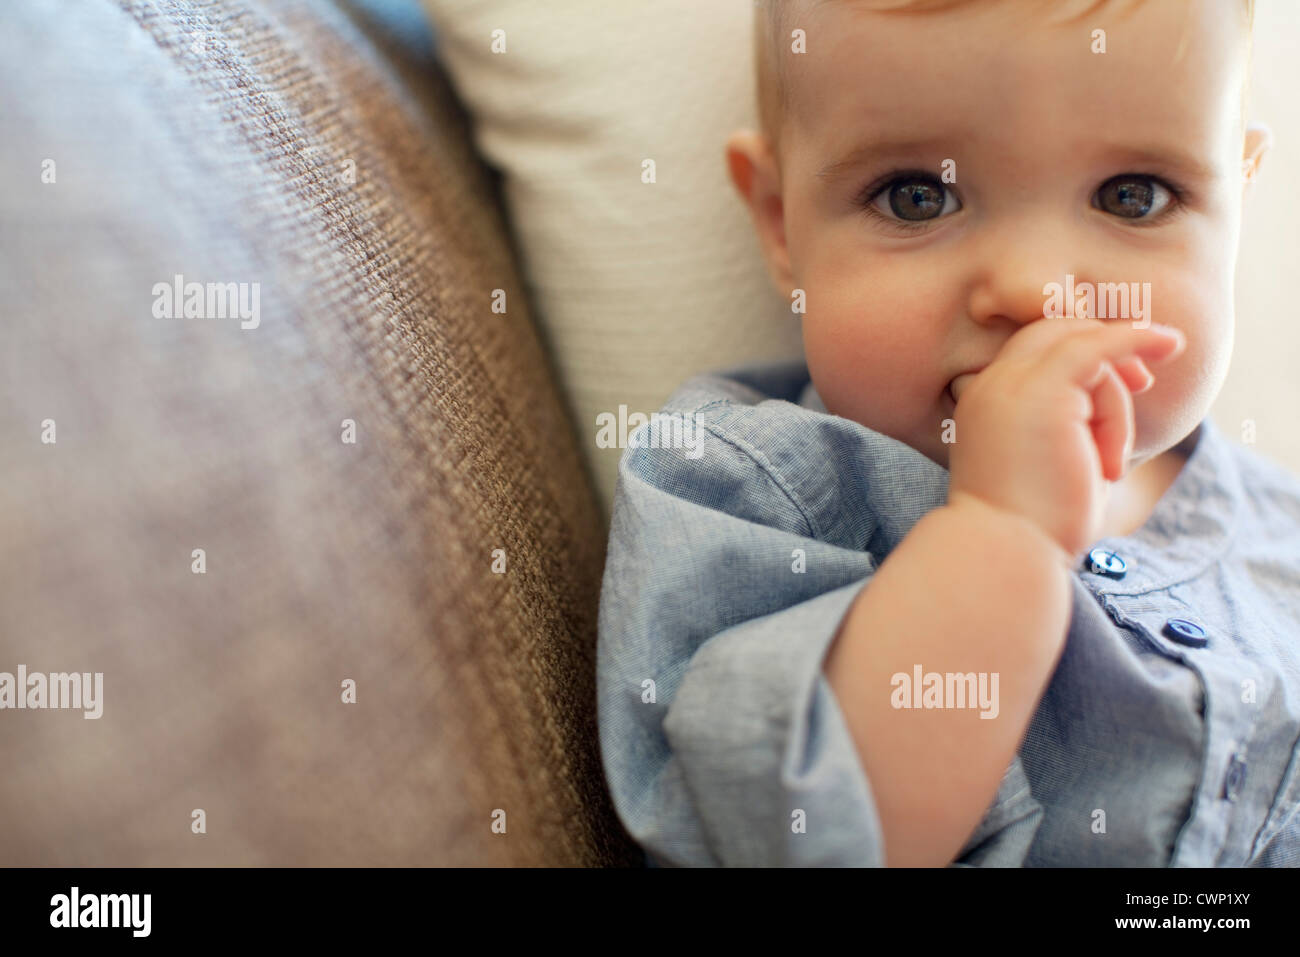 Baby boy, portrait - Stock Image